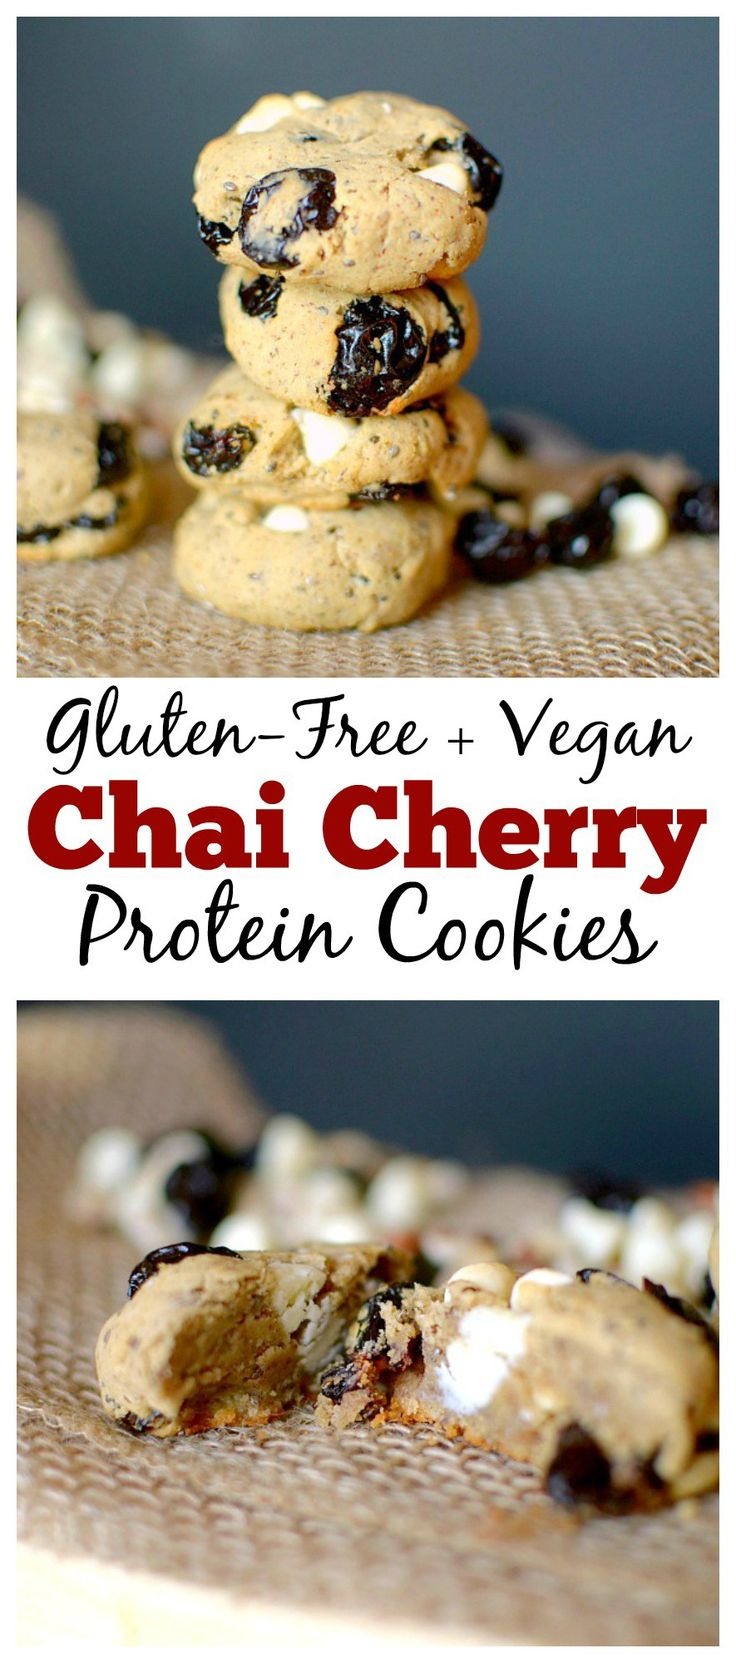 Craving something sweet after a tough workout? Make these Hazelnut Chai Cherry Vegan Protein Cookies! Only six ingredients and less than 20 minutes to make!